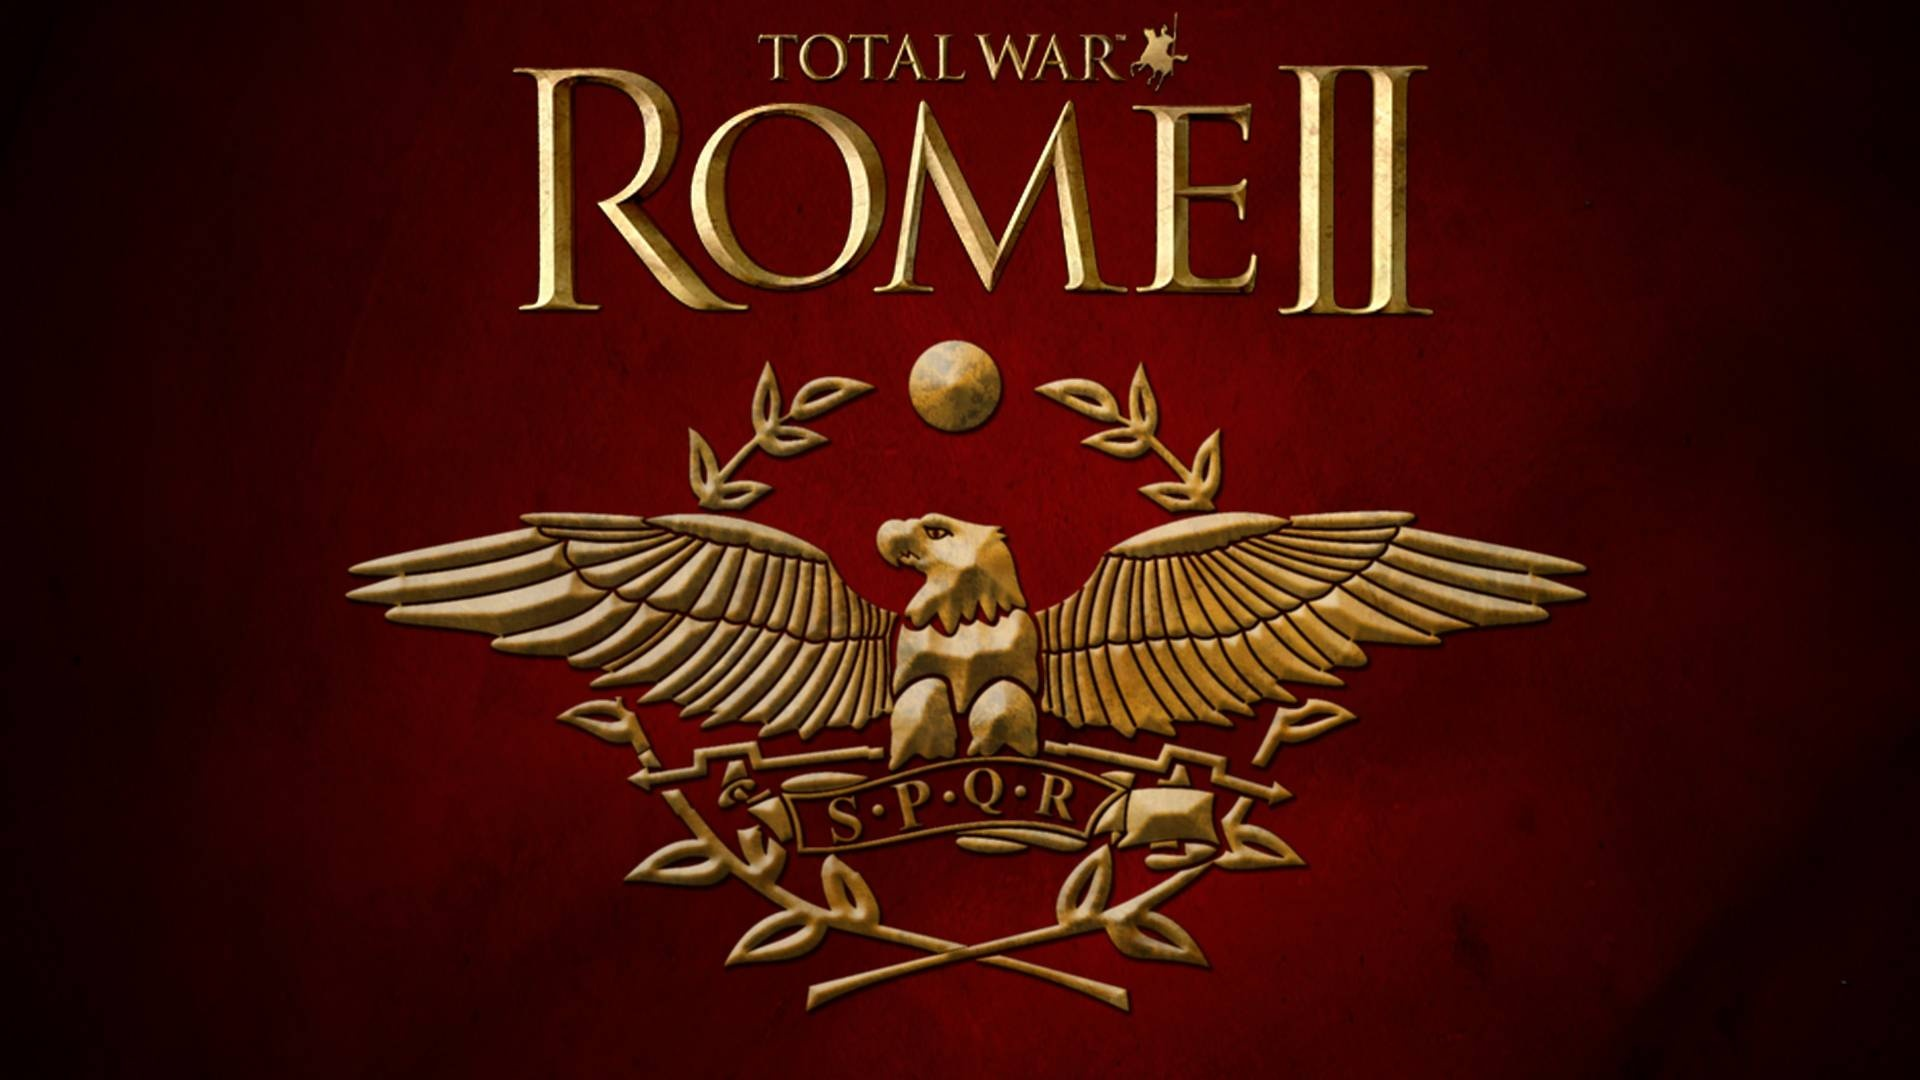 Total War Rome 2 Wallpapers 1920x1080 246327